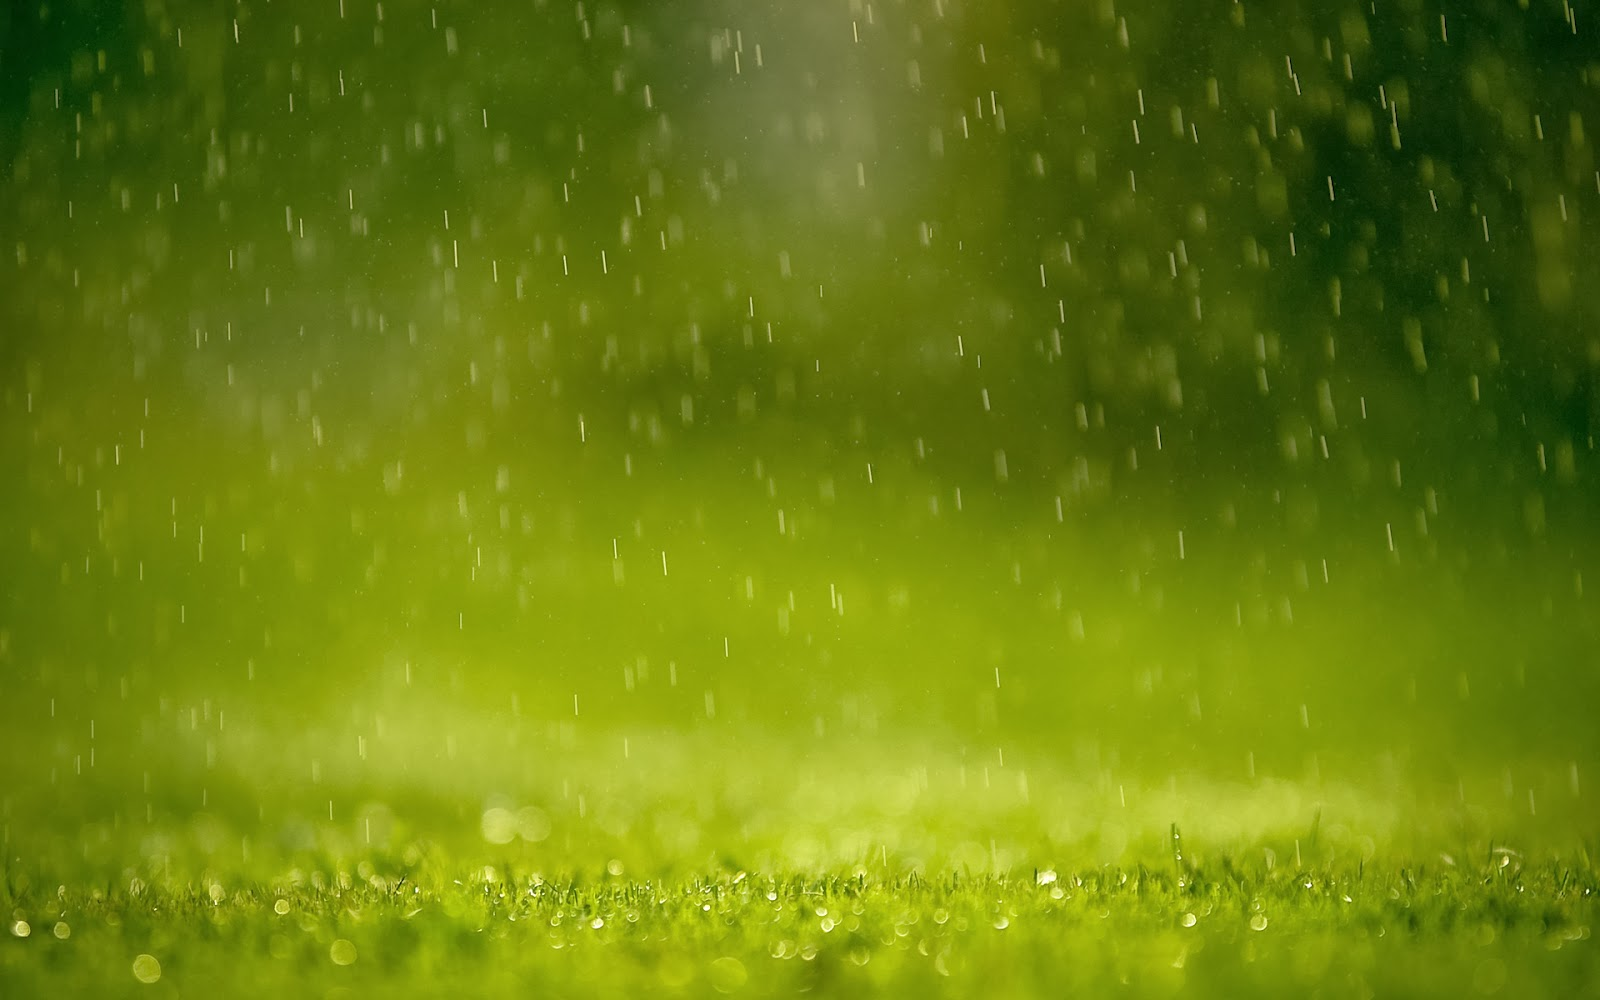 green rain free download desktop wallpaper beautiful